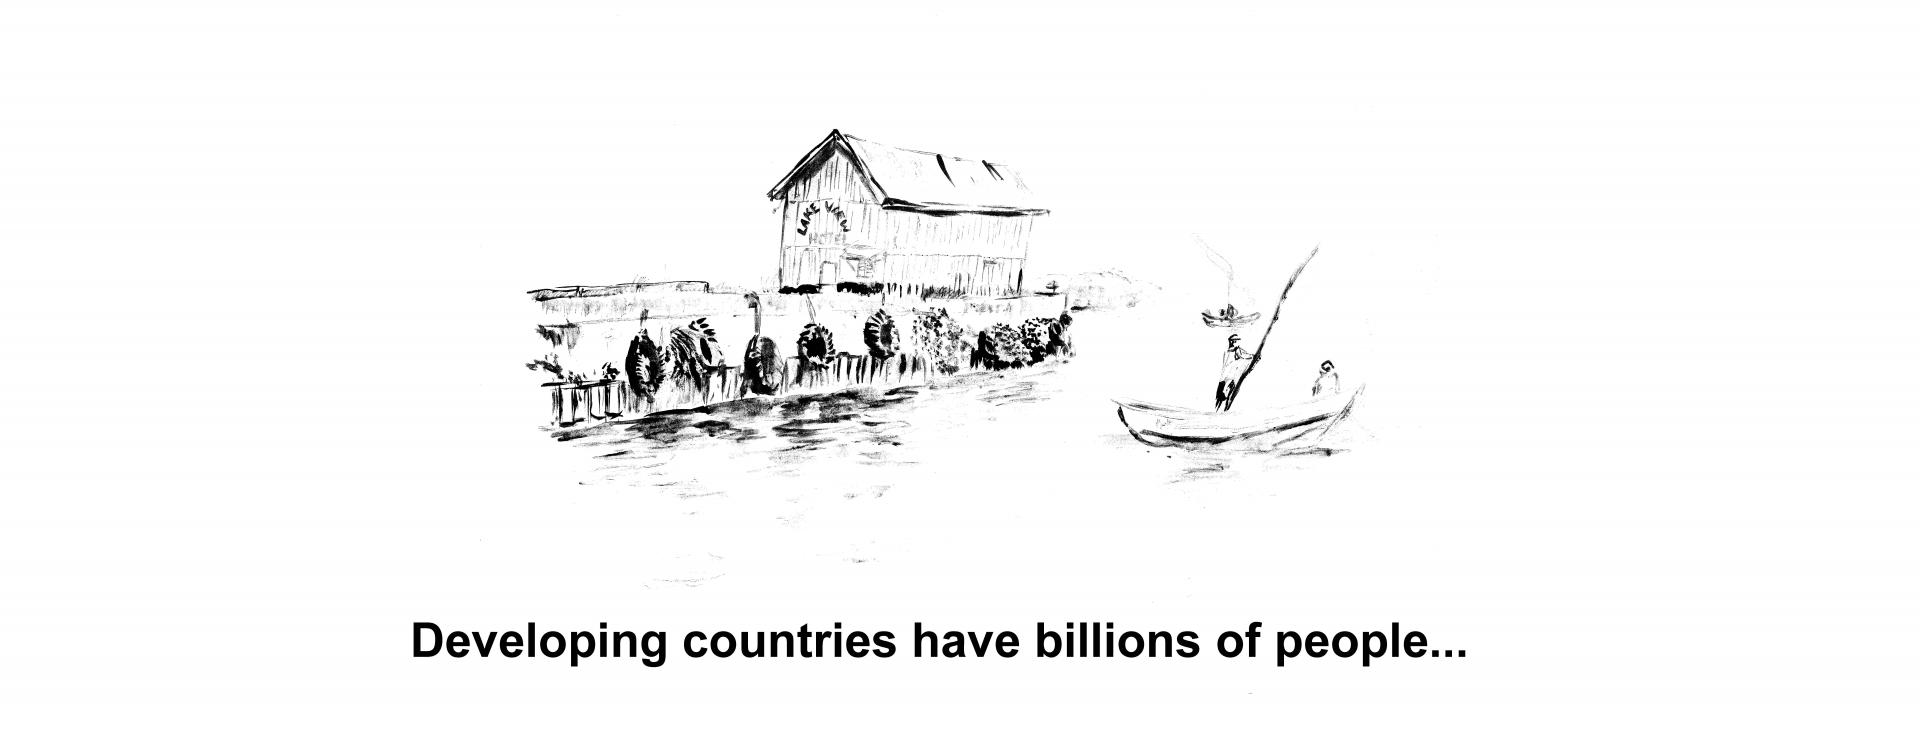 Developing countries have billions of people...